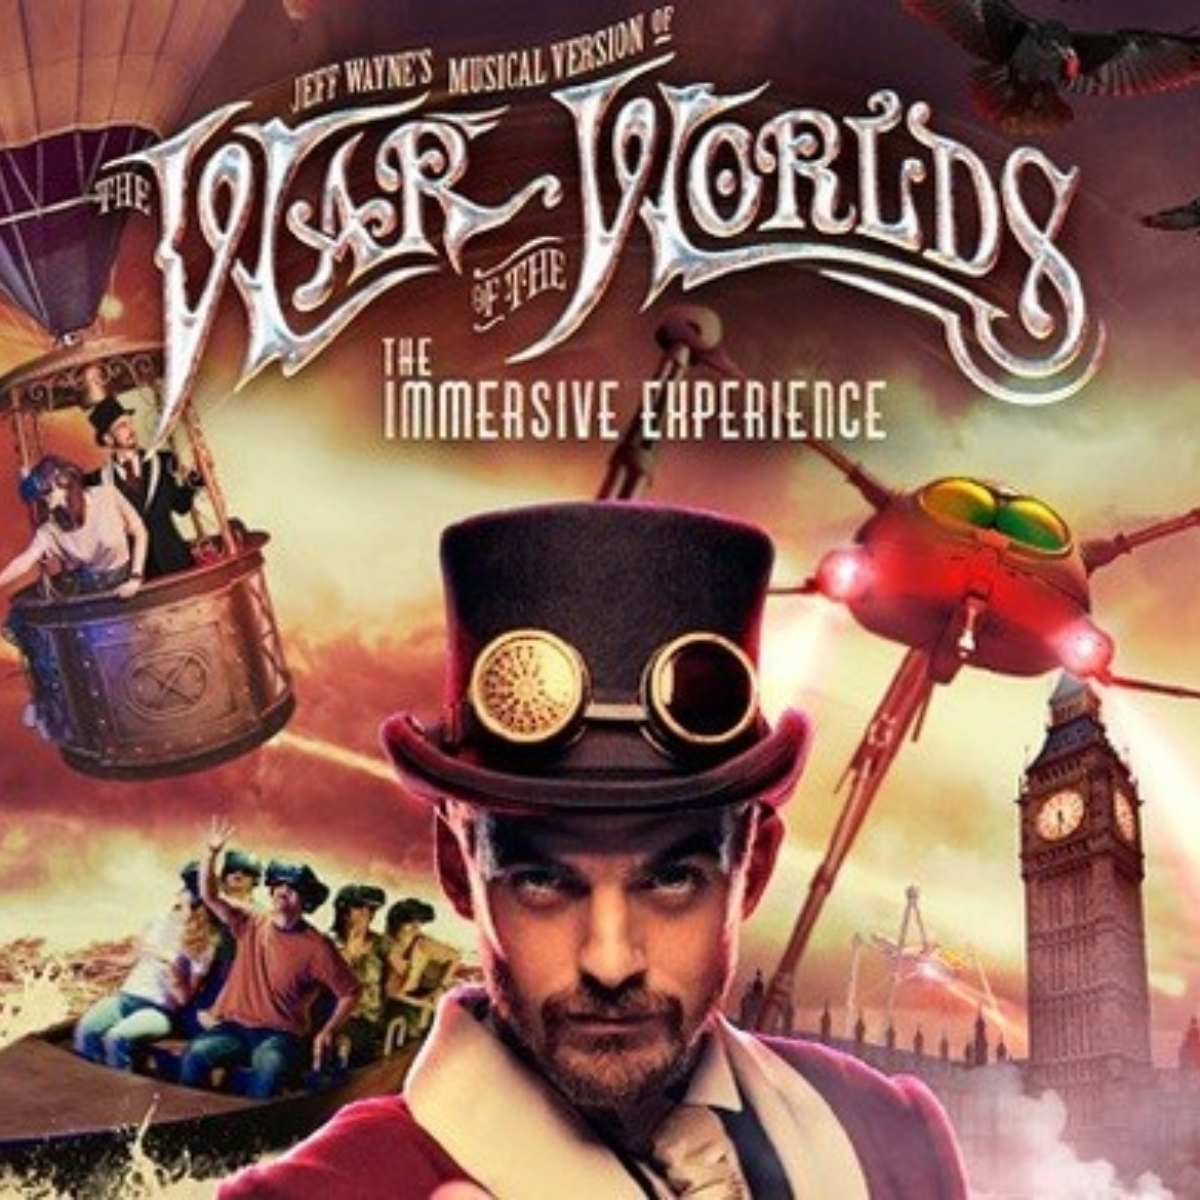 Jeff Wayne's The War of The Worlds: The Immersive Experience Images